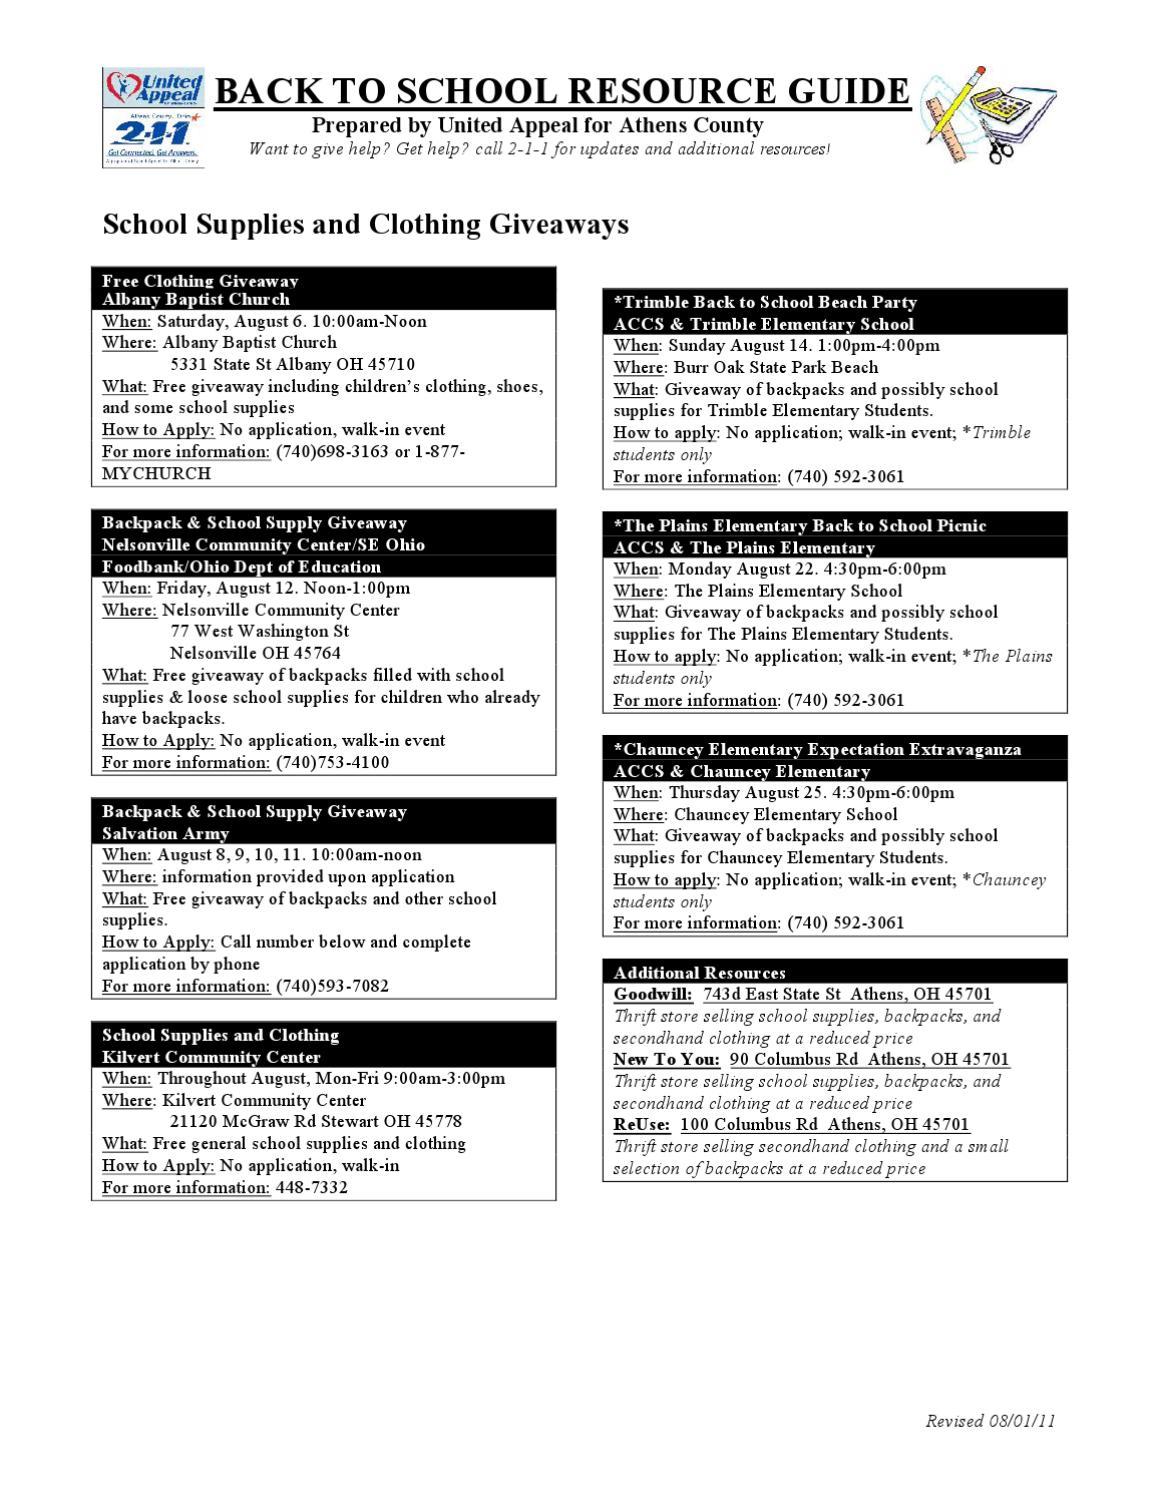 Athens County Back to School Resource Guide by Jessie